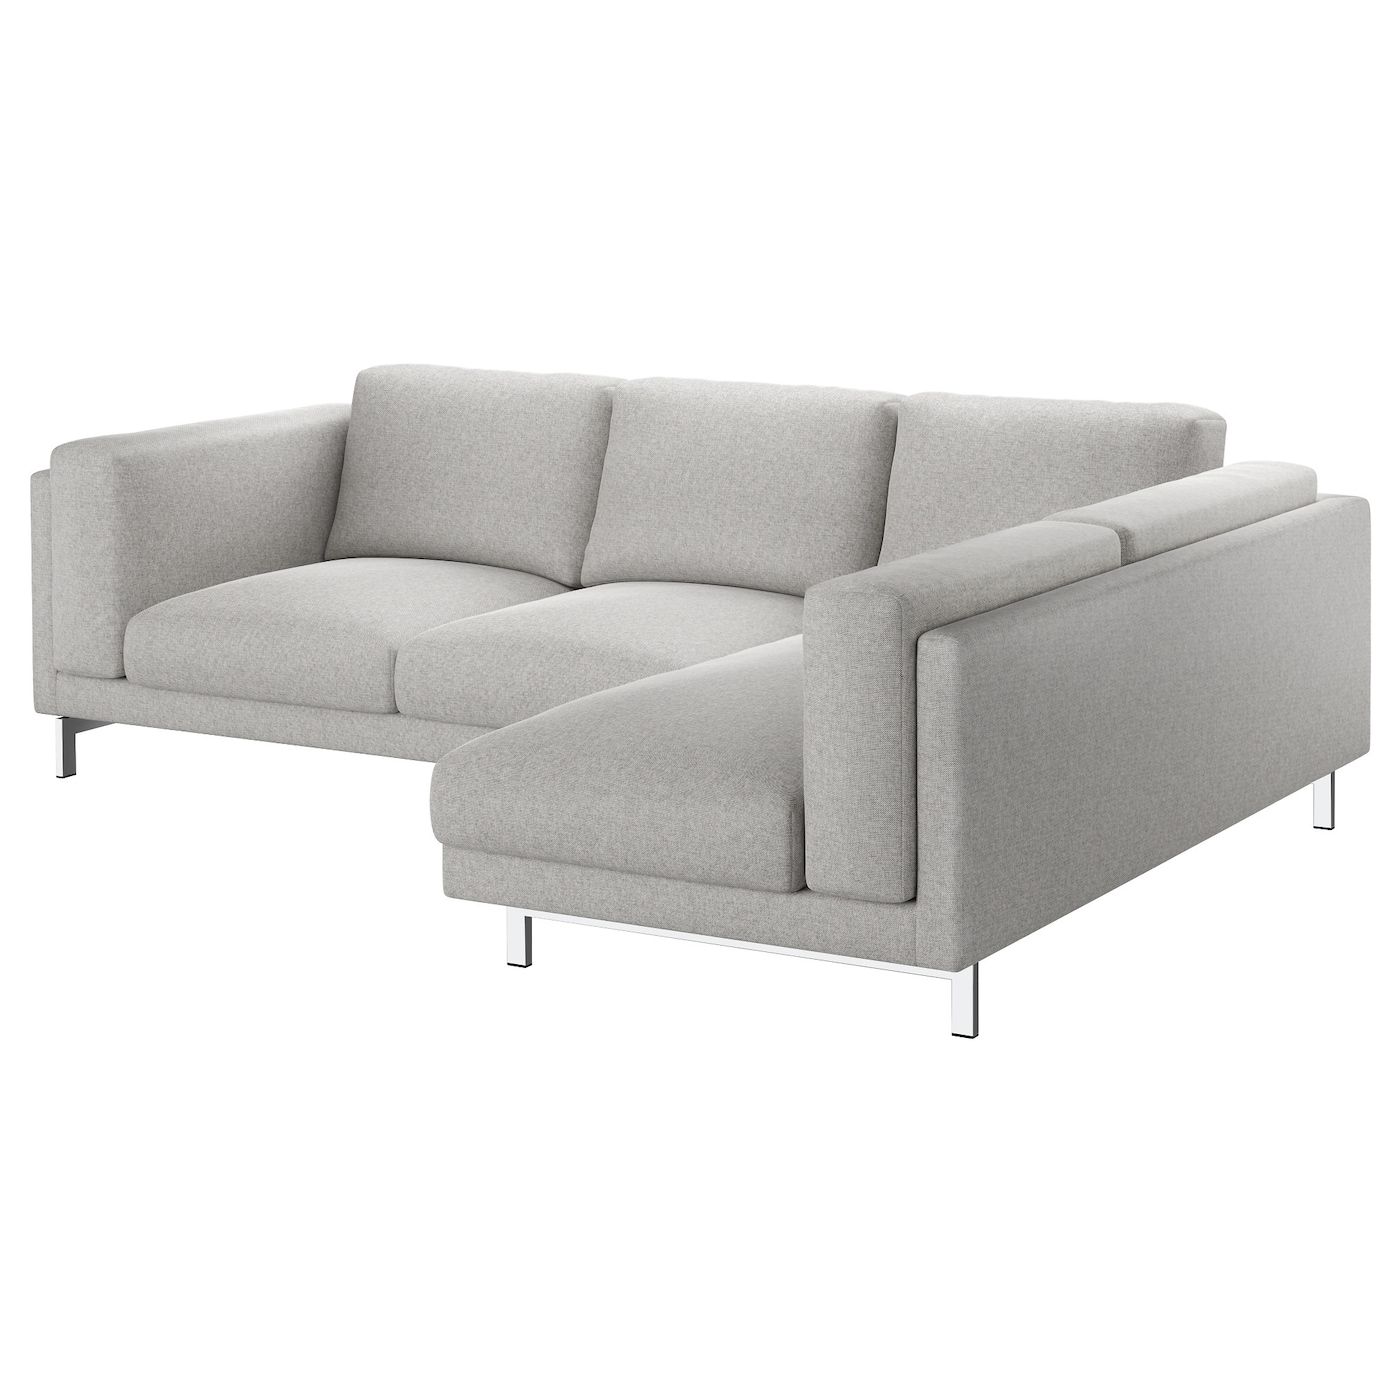 Nockeby two seat sofa w chaise longue right tallmyra white for Chaise longue sofa cama